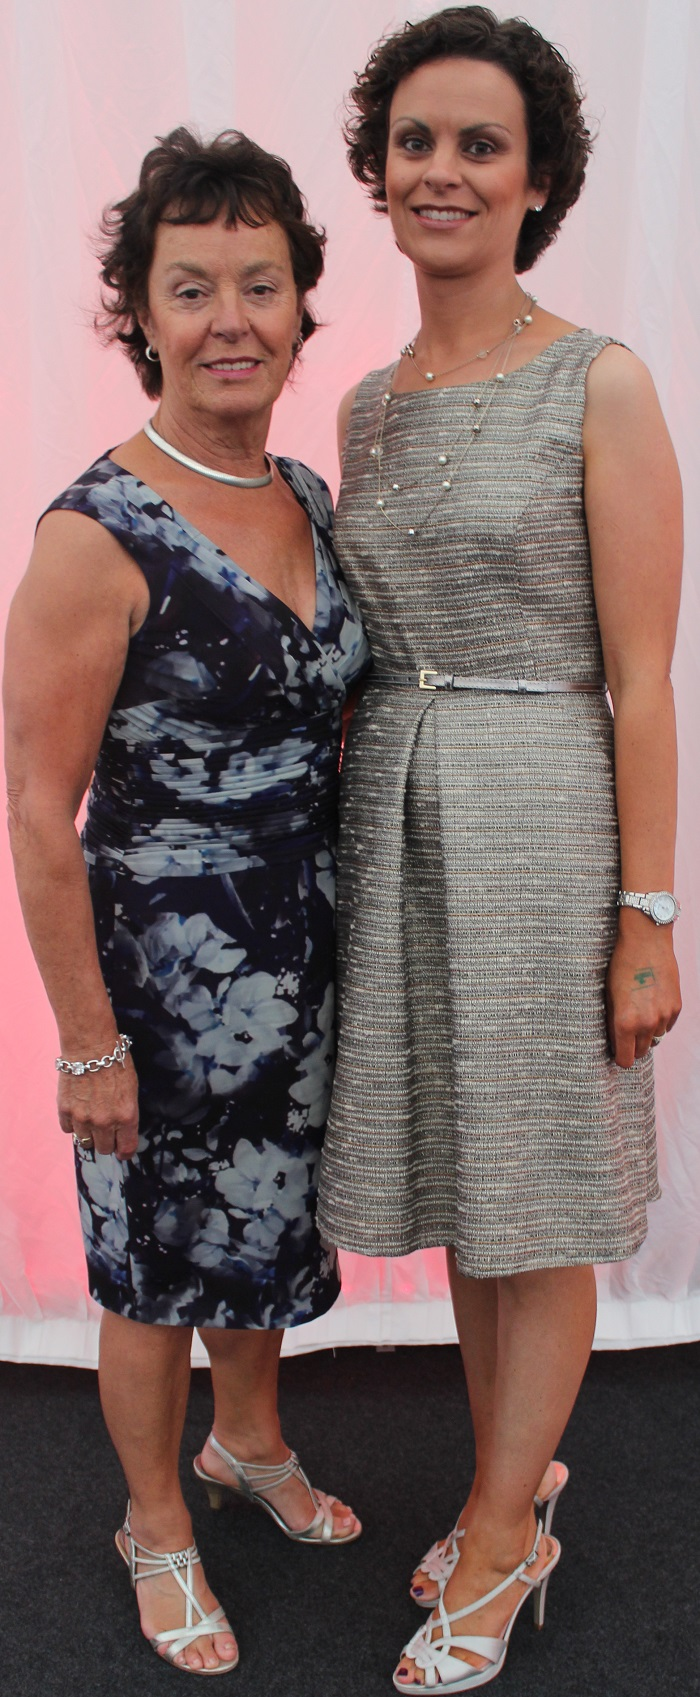 At the Rose Fashion show were, from left: Margaret O'Connor and Charlotte Reidy. Photo by Gavin O'Connor.